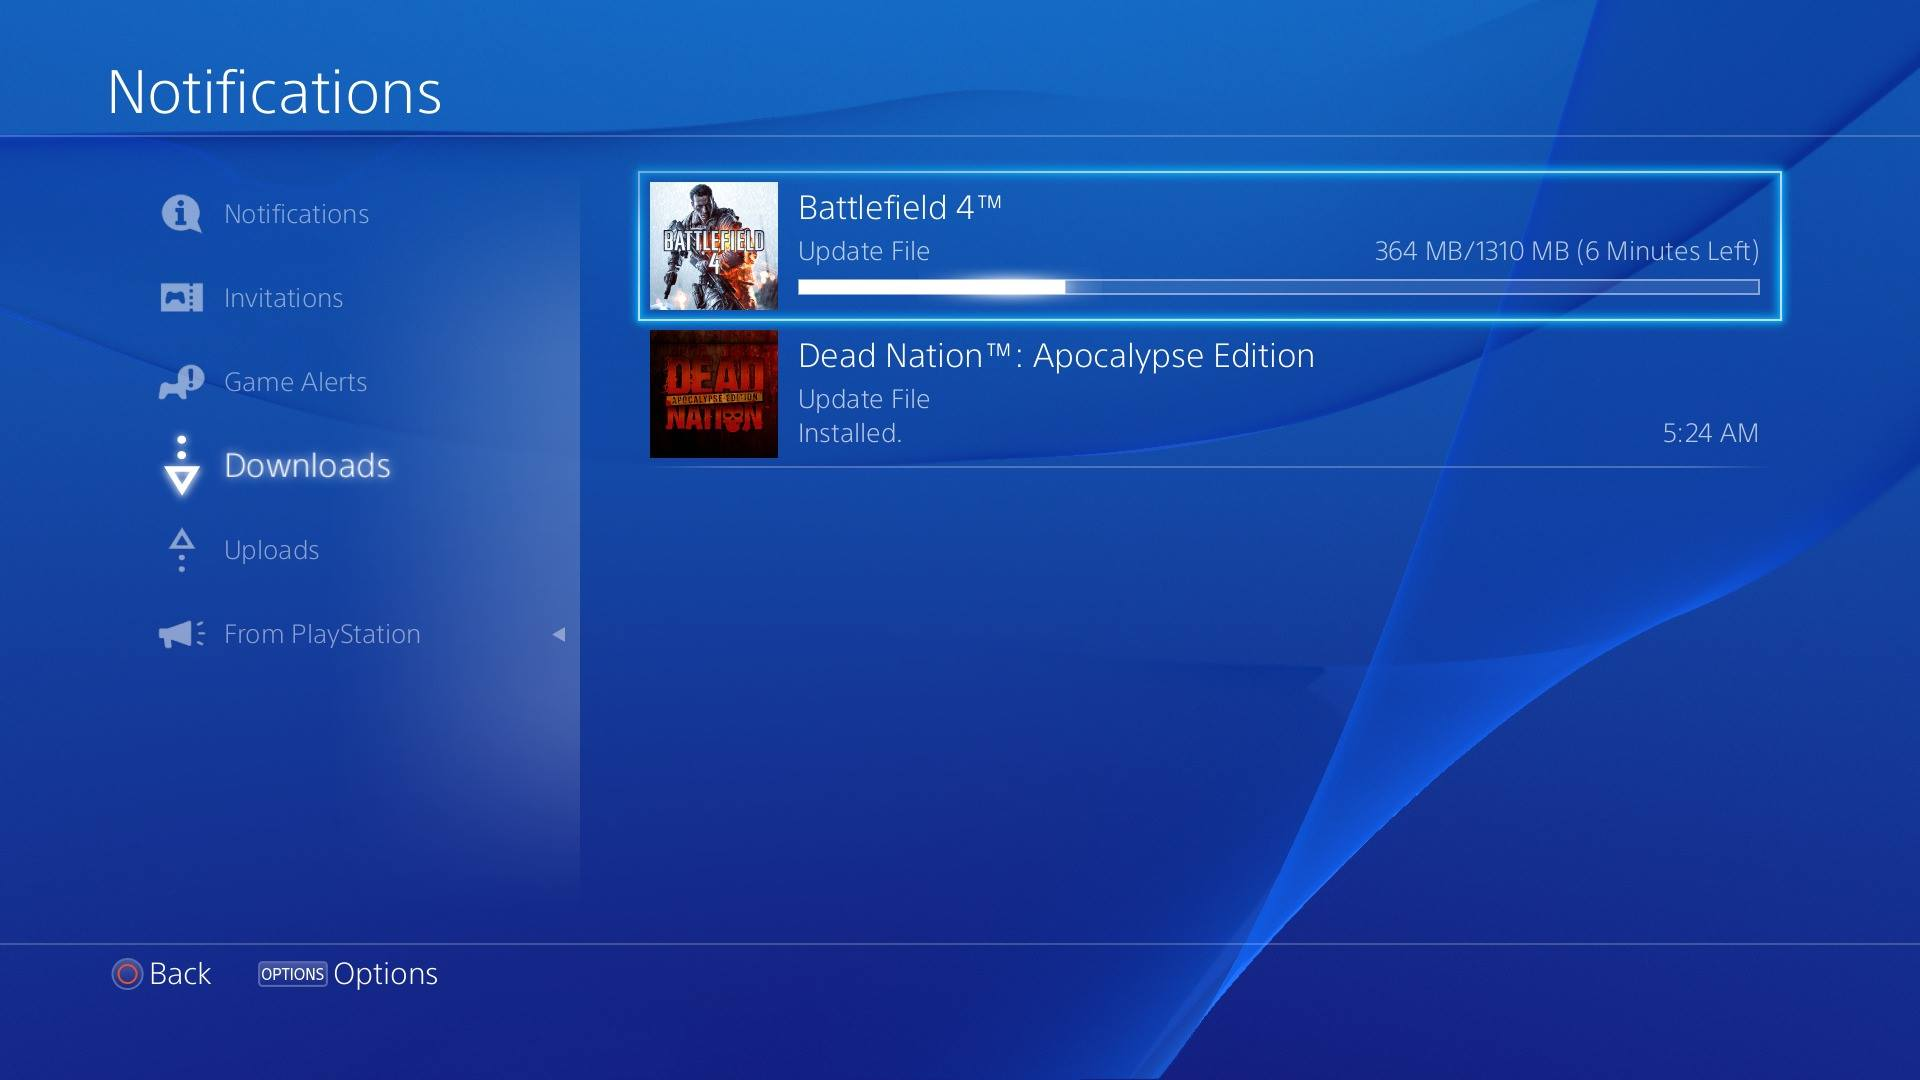 What normally would've taken anywhere from 7-8 hours to complete, now downloads in less than 10 minutes.